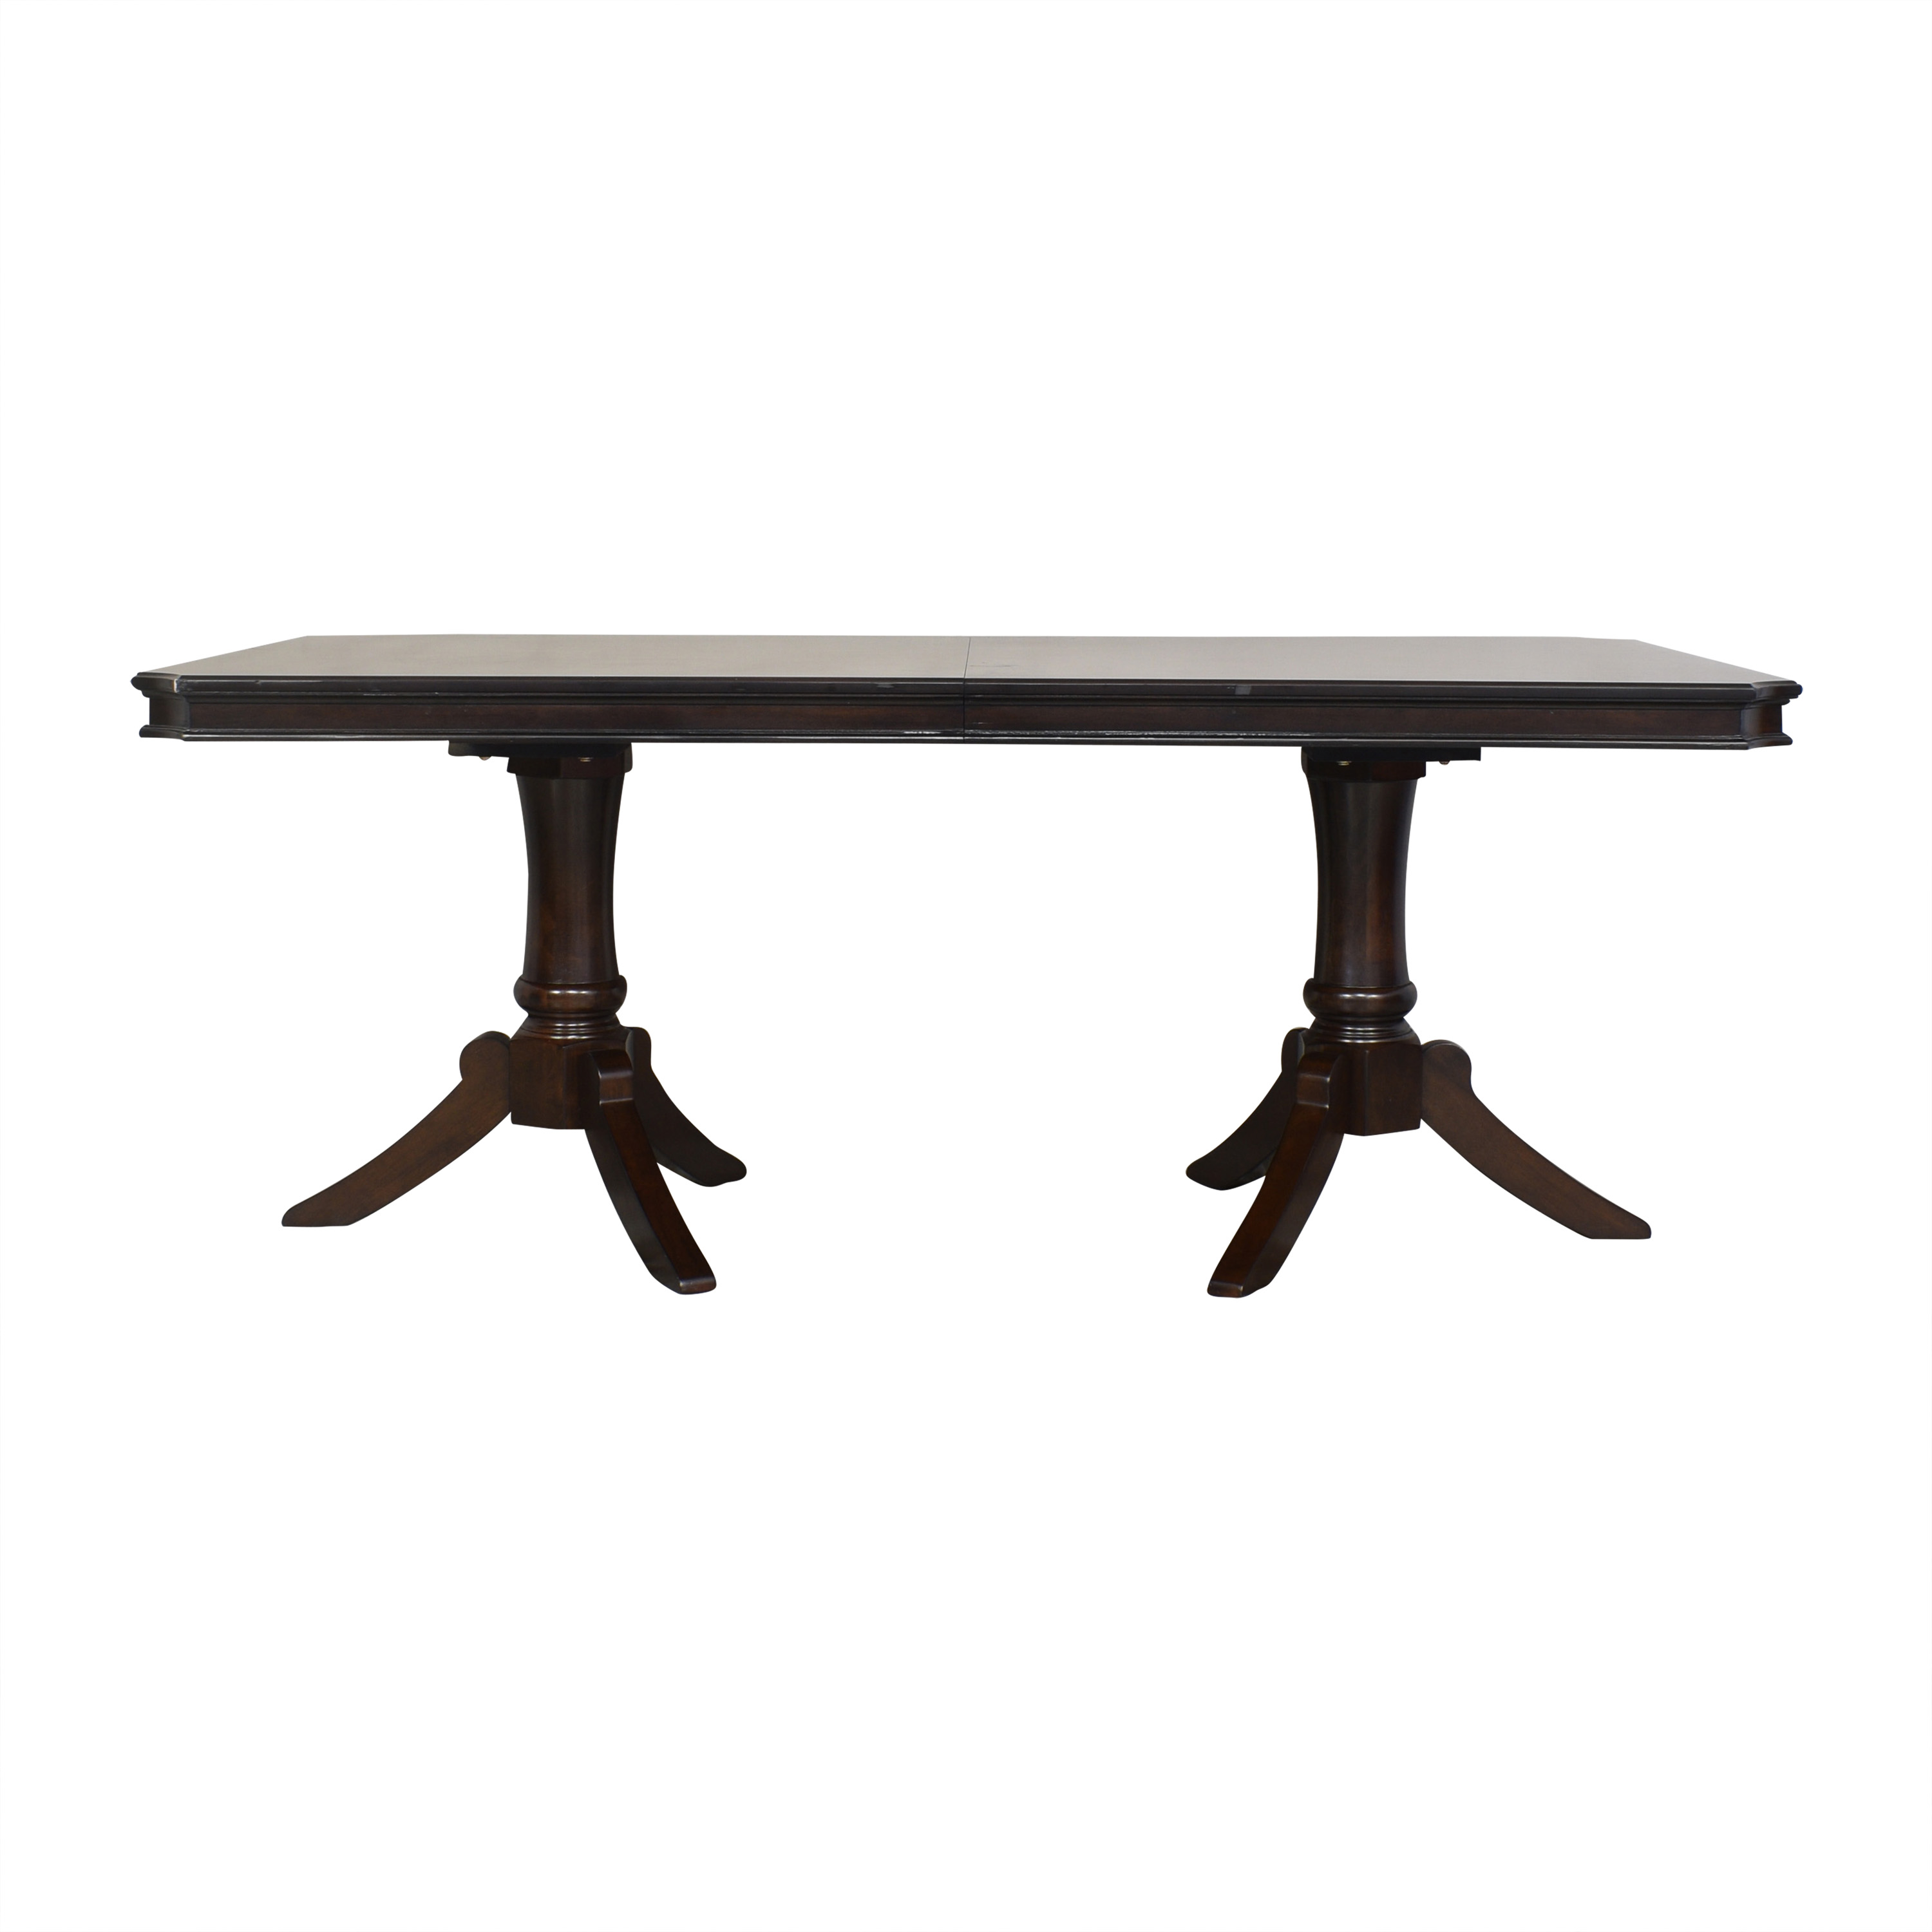 Raymour & Flanigan Raymour & Flanagan Extendable Dining Table for sale